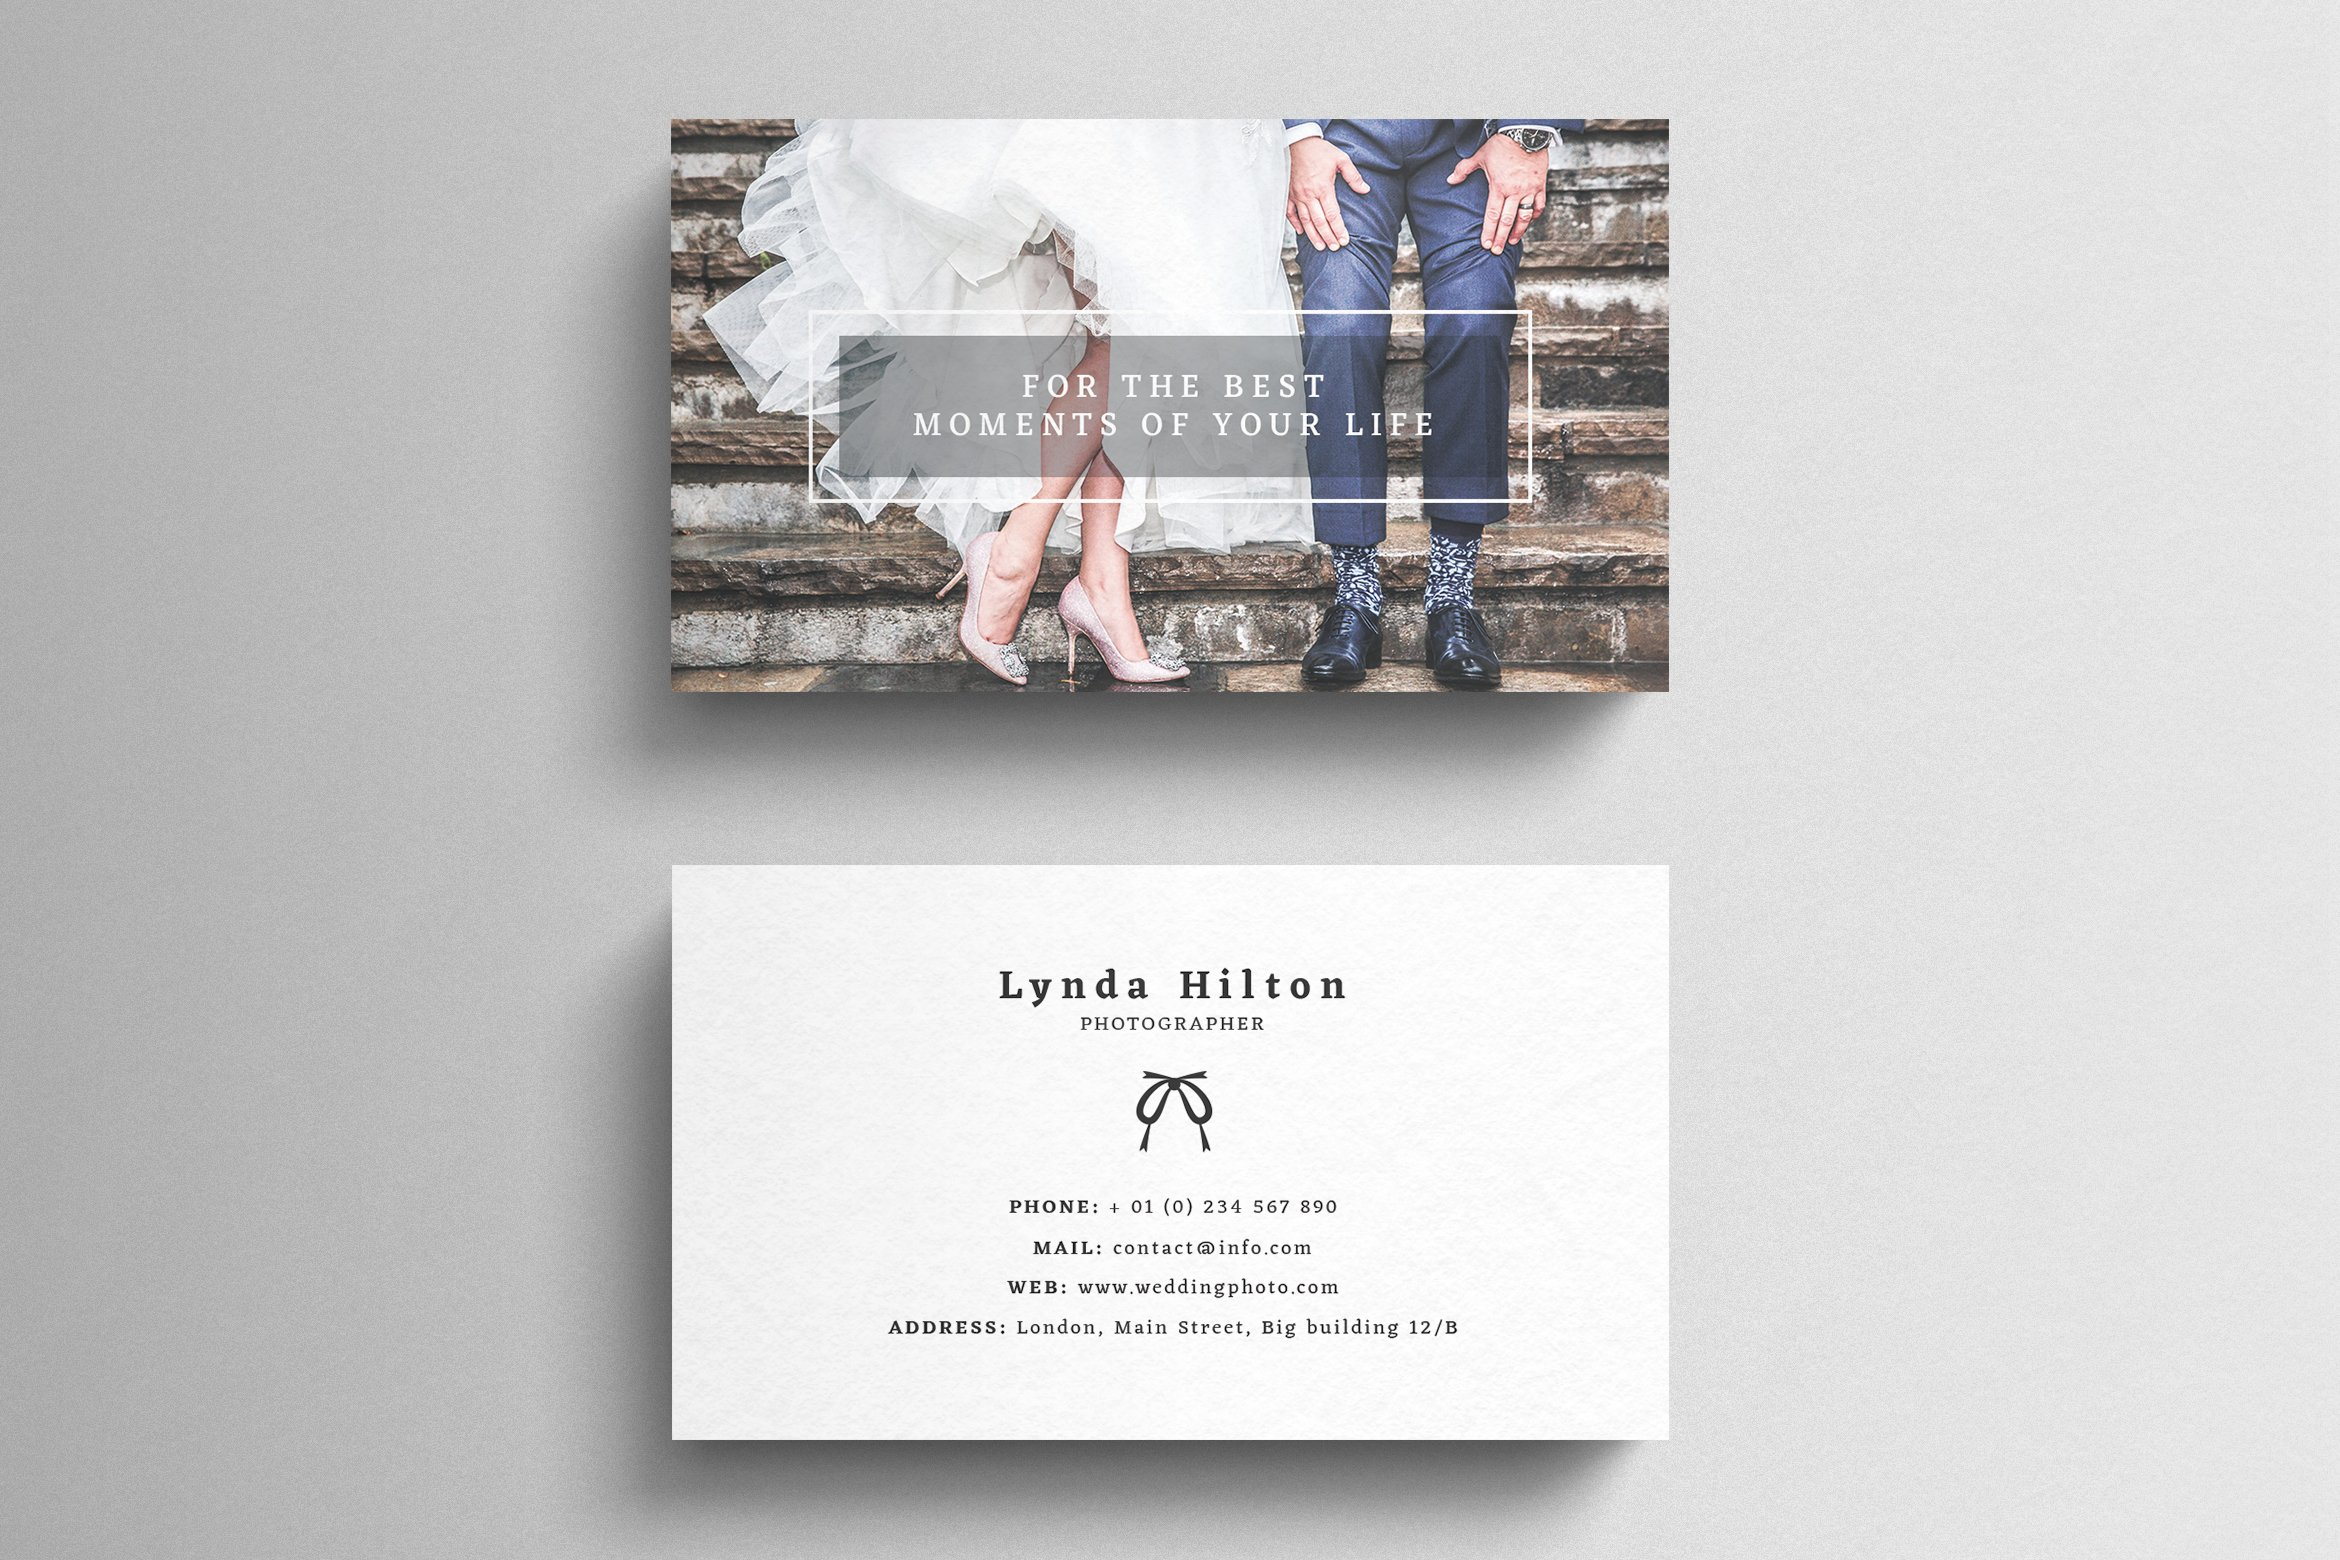 Wedding Photography Business Card ~ Business Card Templates ...